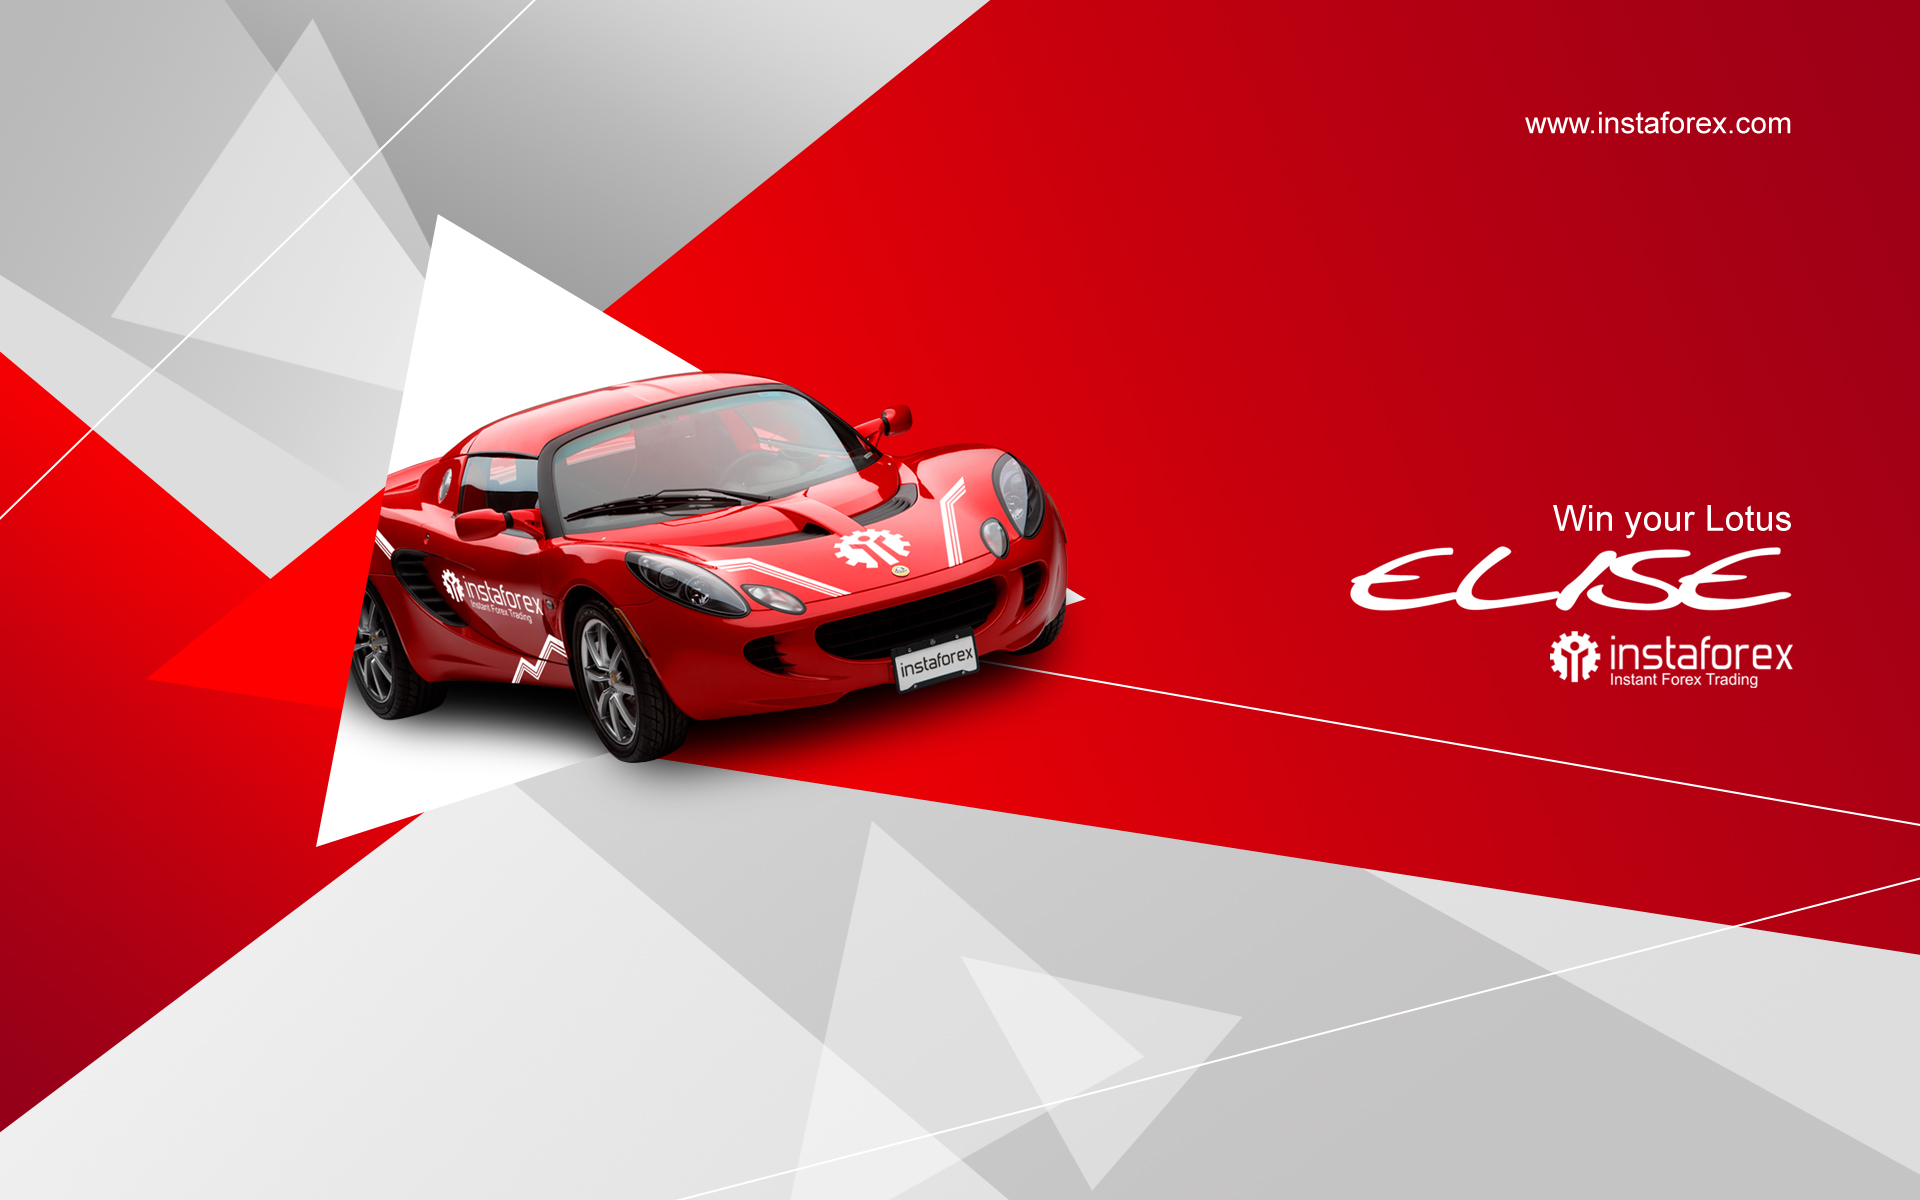 Lotus forex liverpool